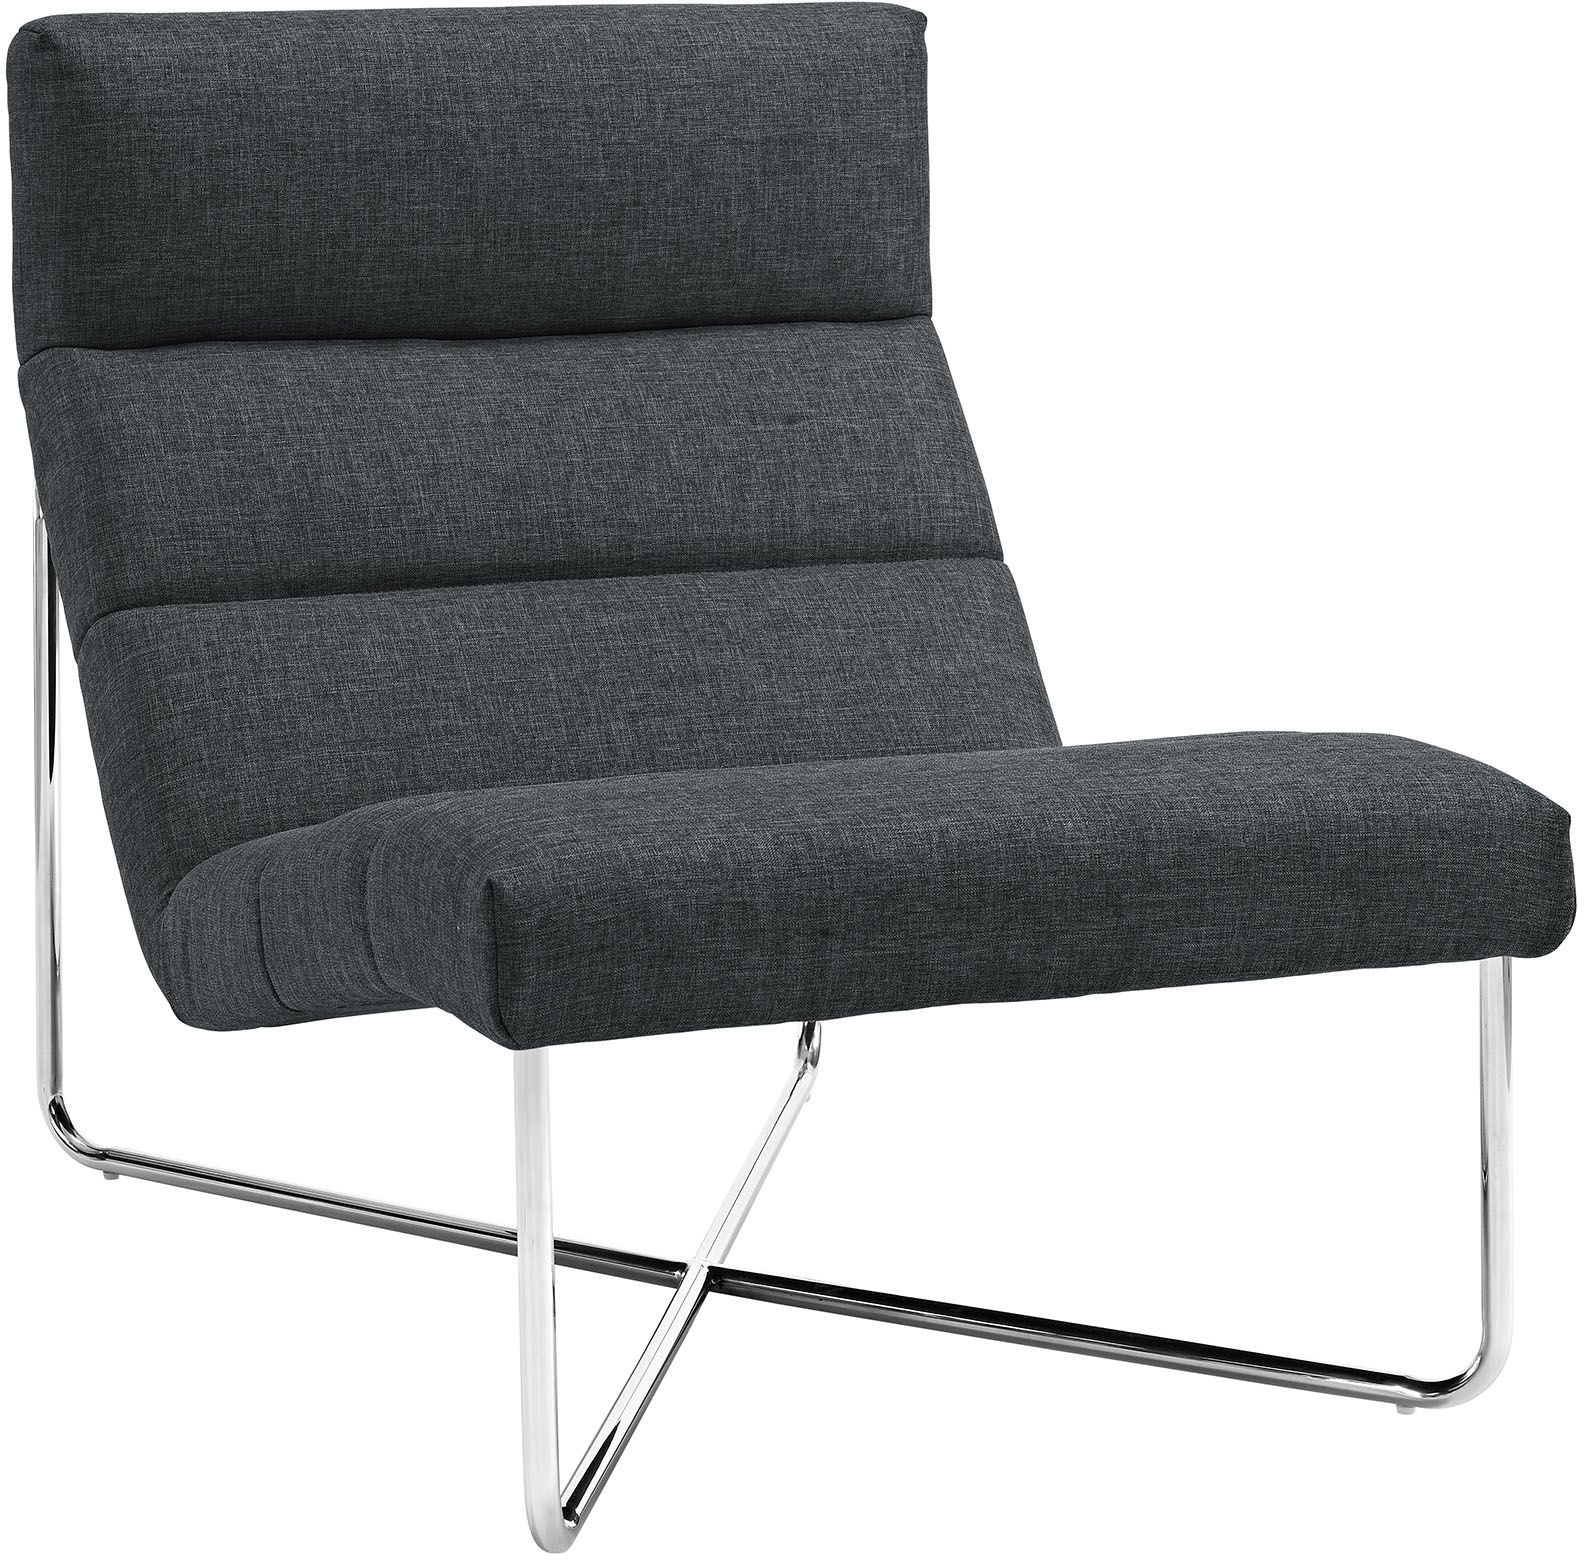 Reach Gray Lounge Chair EEI 2081 GRY Renegade Furniture